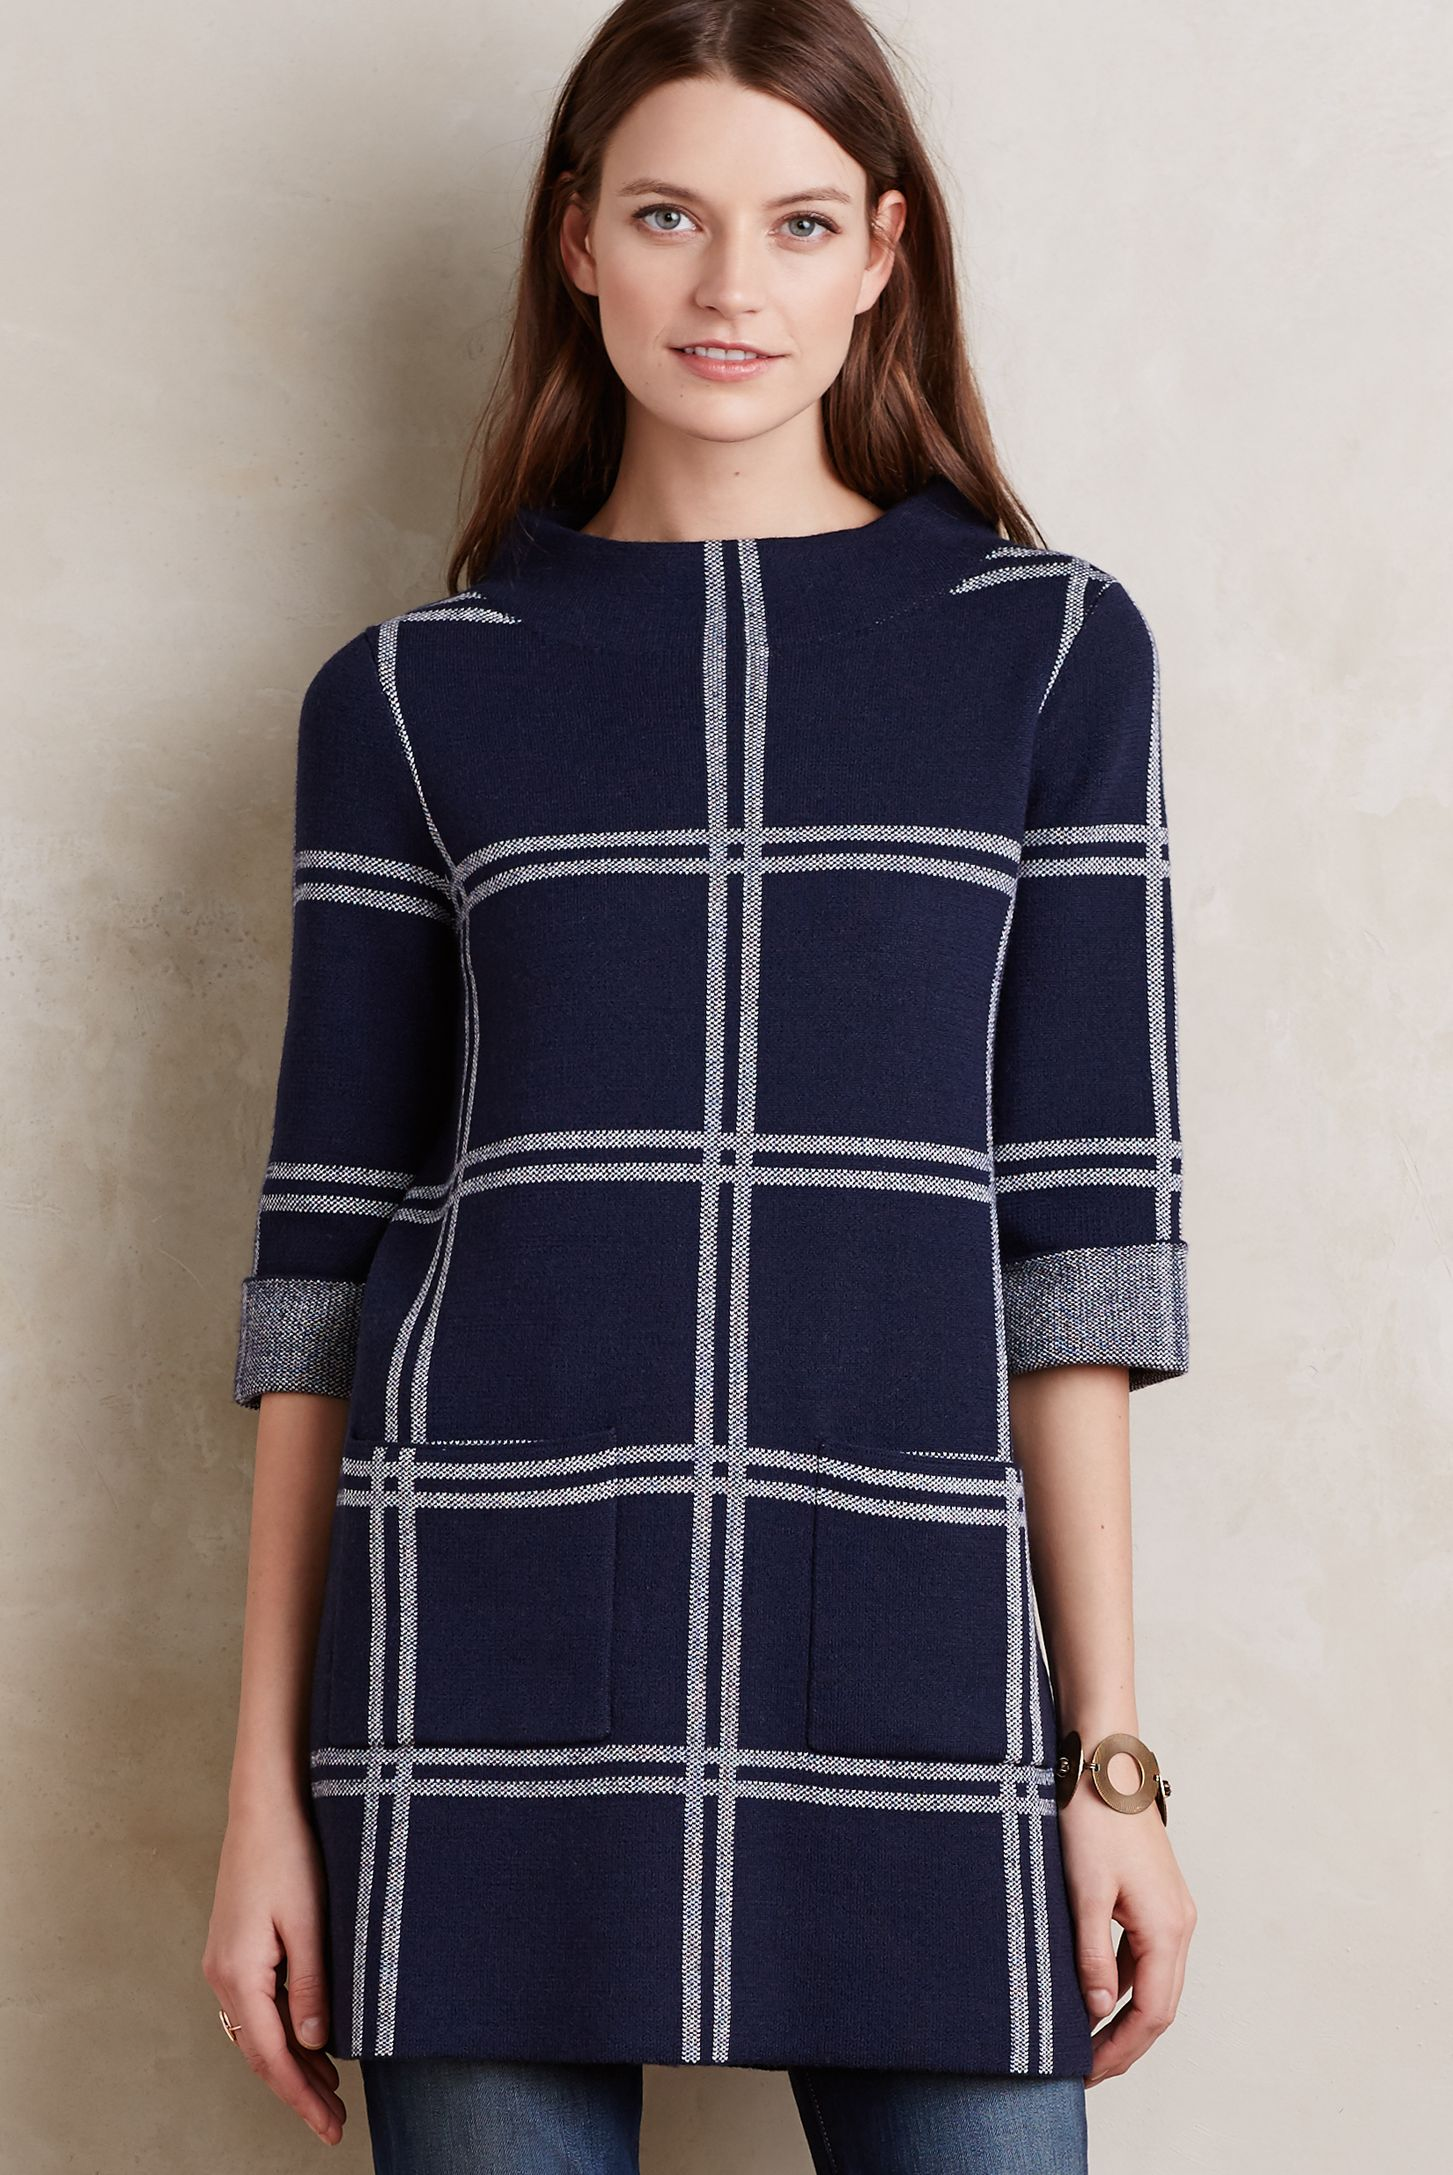 Paned Sweater Tunic | Anthropologie